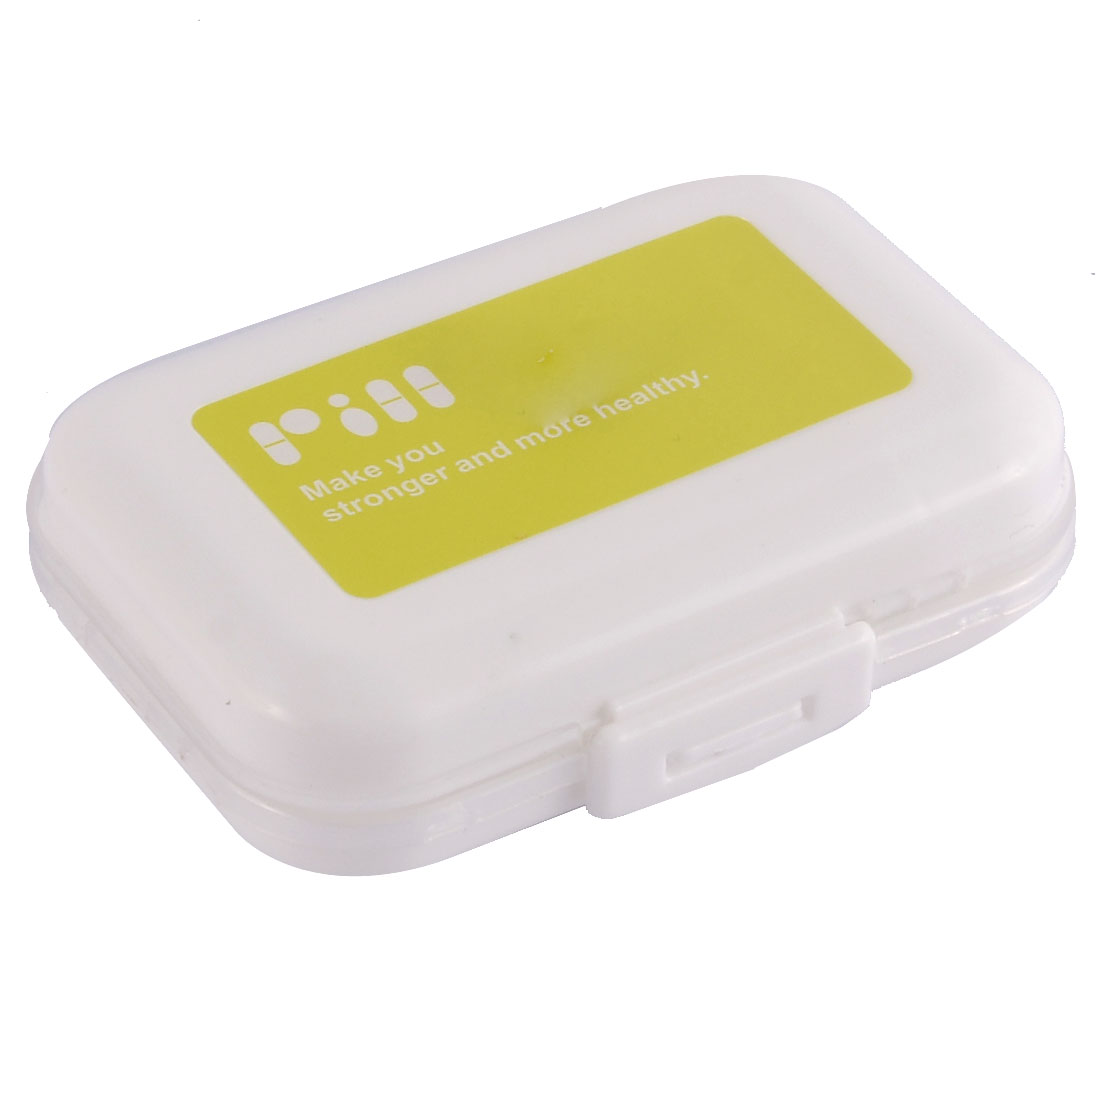 Plastic 8 Slots Medicine Vitamin Tablet Pill Storage Box Case White Yellow